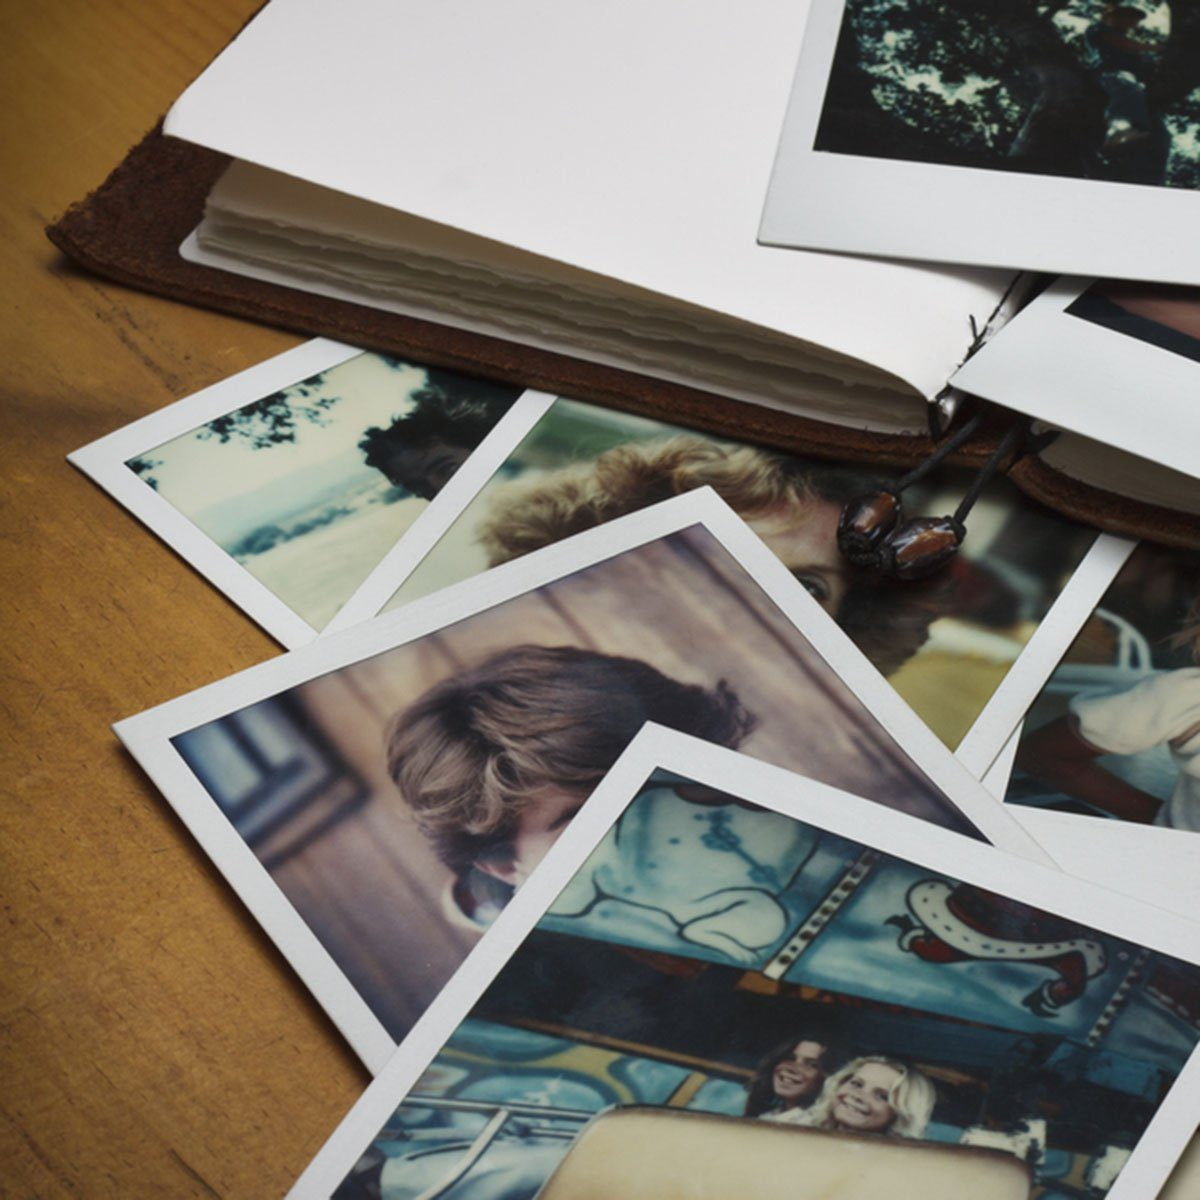 Old pictures and a journal.; Shutterstock ID 100487740